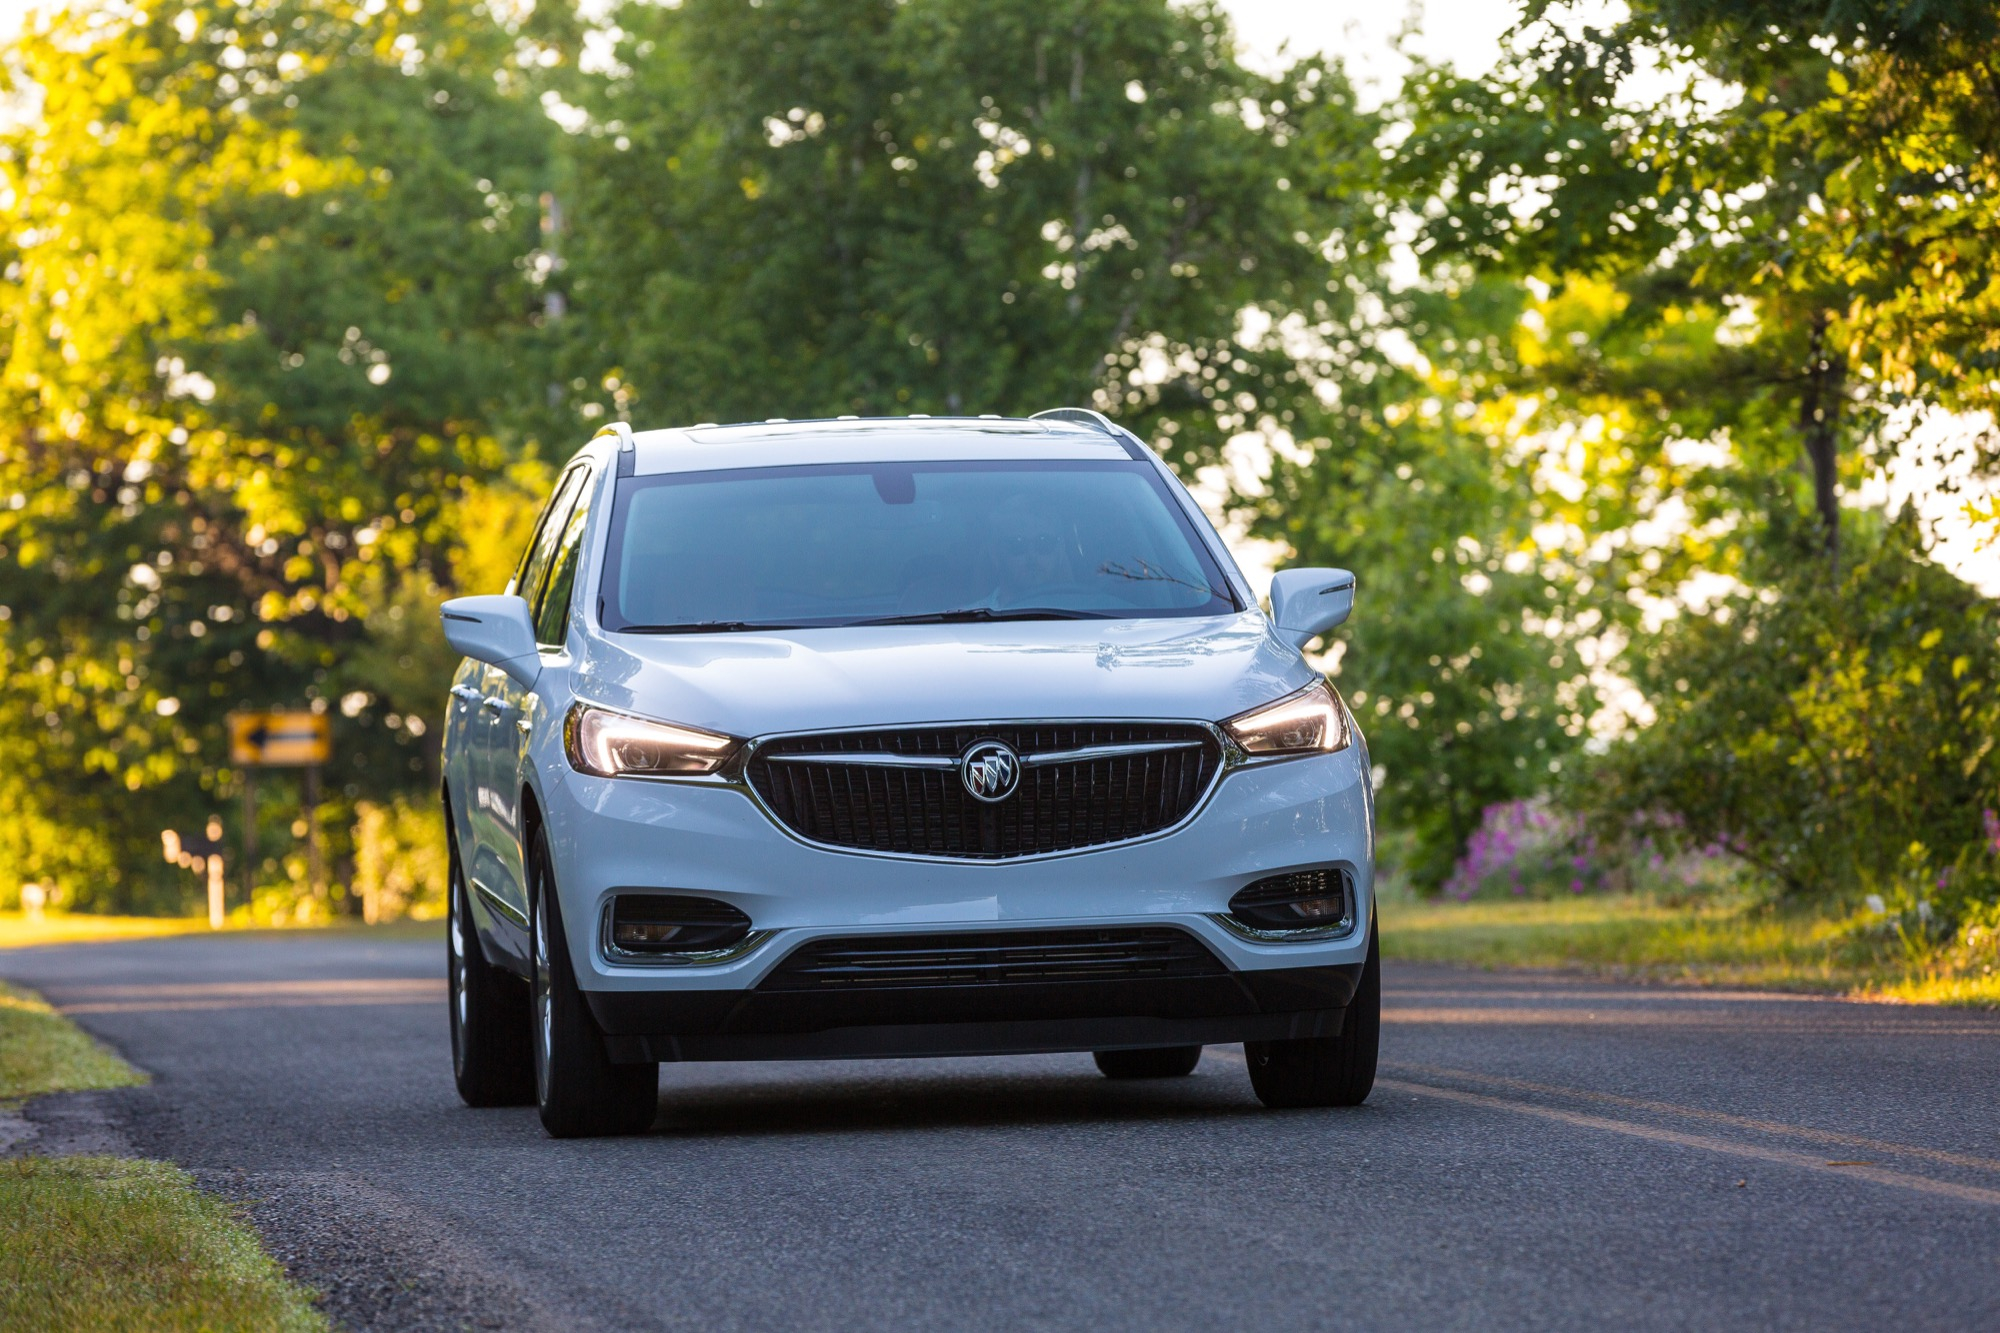 Gm Slammed In Latest Reliability Survey | Gm Authority New 2022 Buick Enclave Oil Capacity, Owner's Manual, Problems